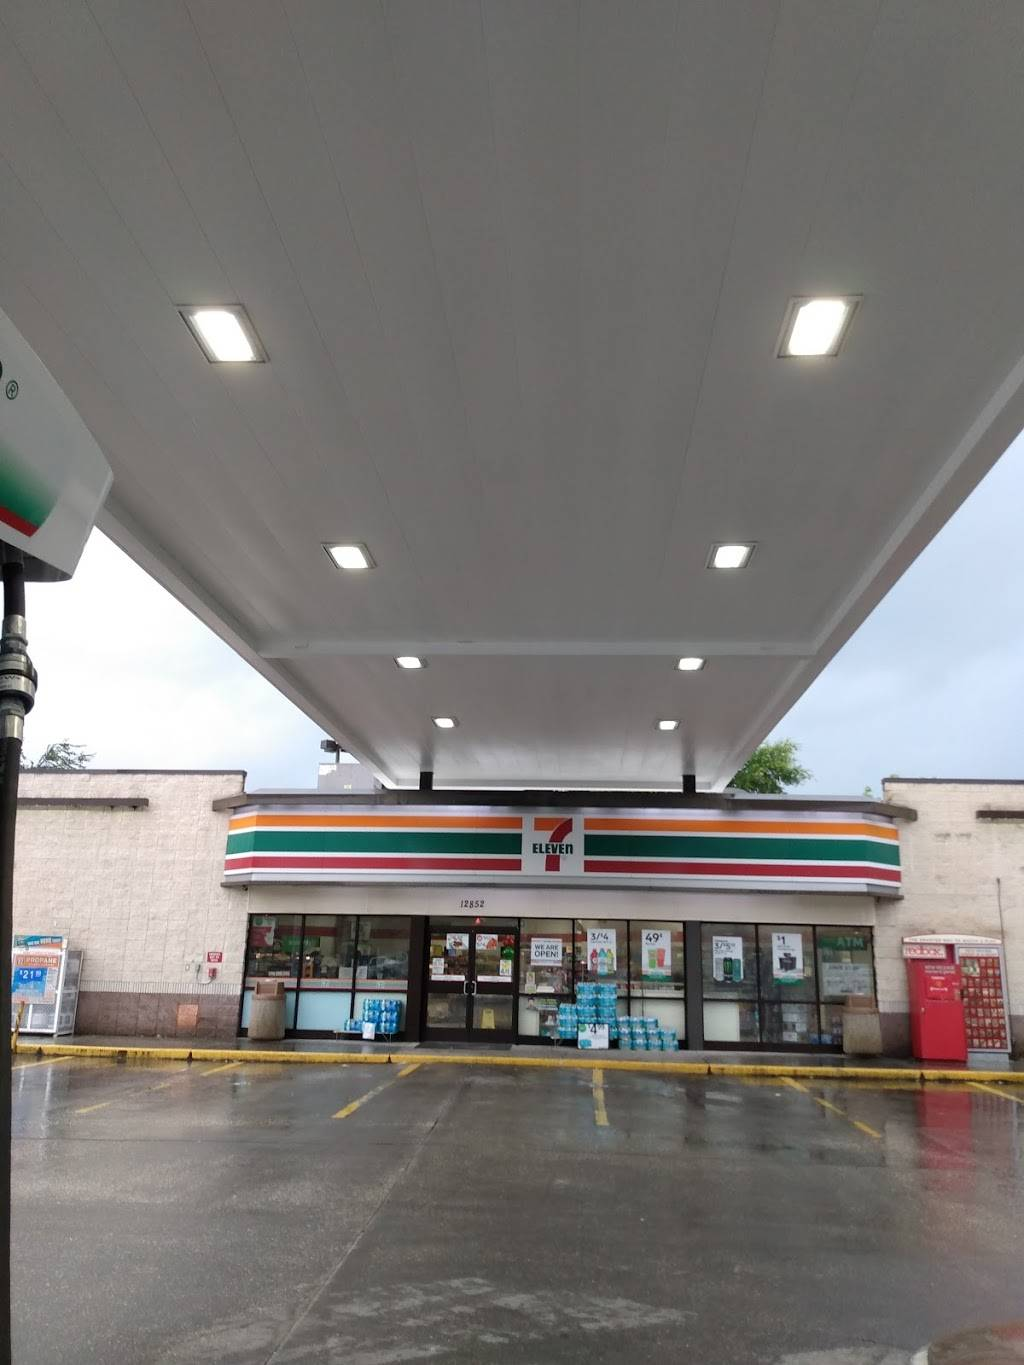 7-Eleven   bakery   12852 State Rd 52, Hudson, FL 34669, USA   7273790233 OR +1 727-379-0233